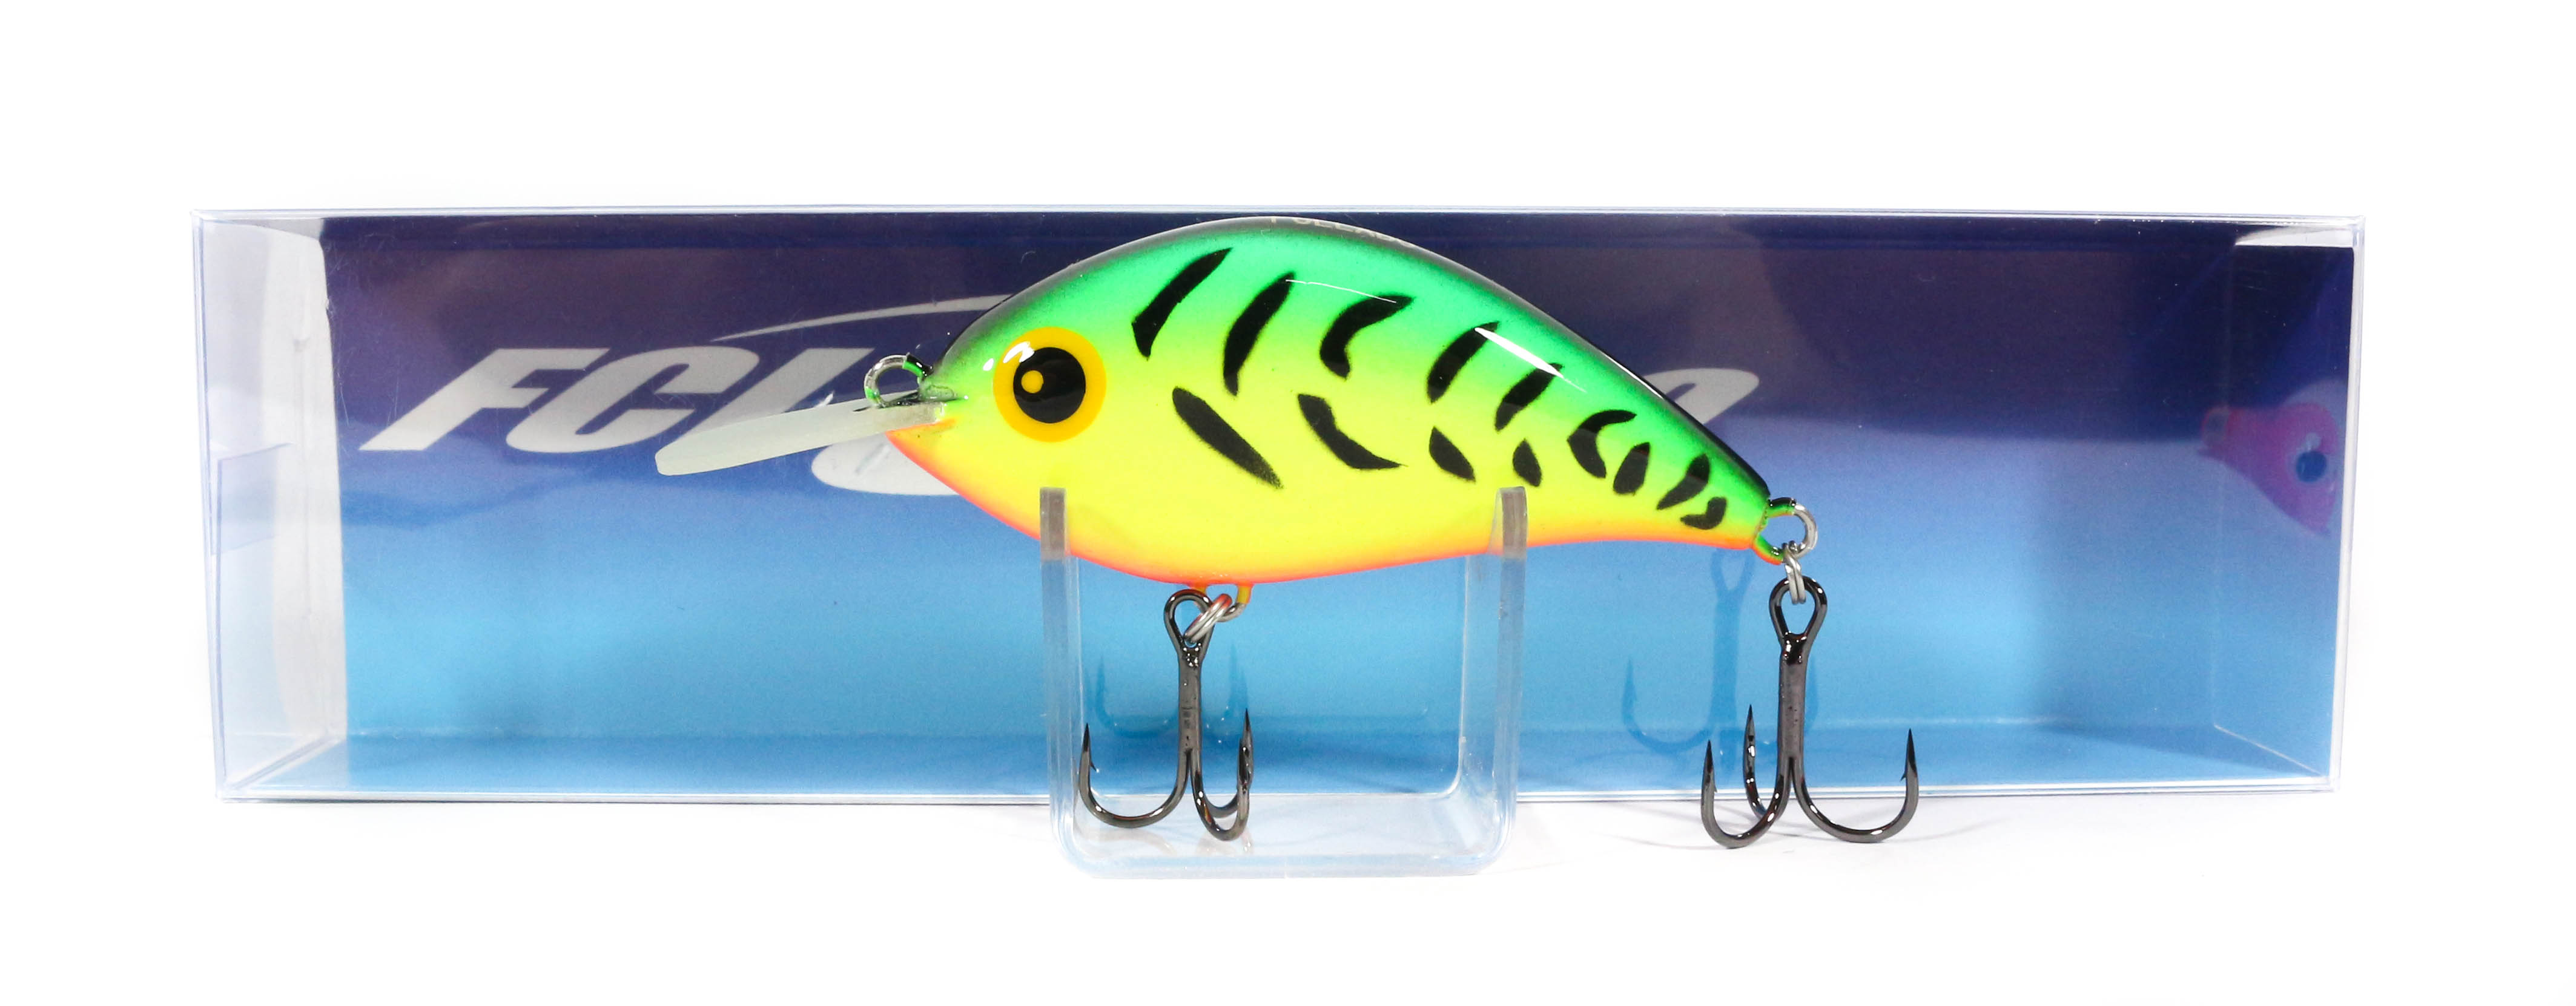 FCL Labo Lure TKC 60 Floating Lure FFT (3870)